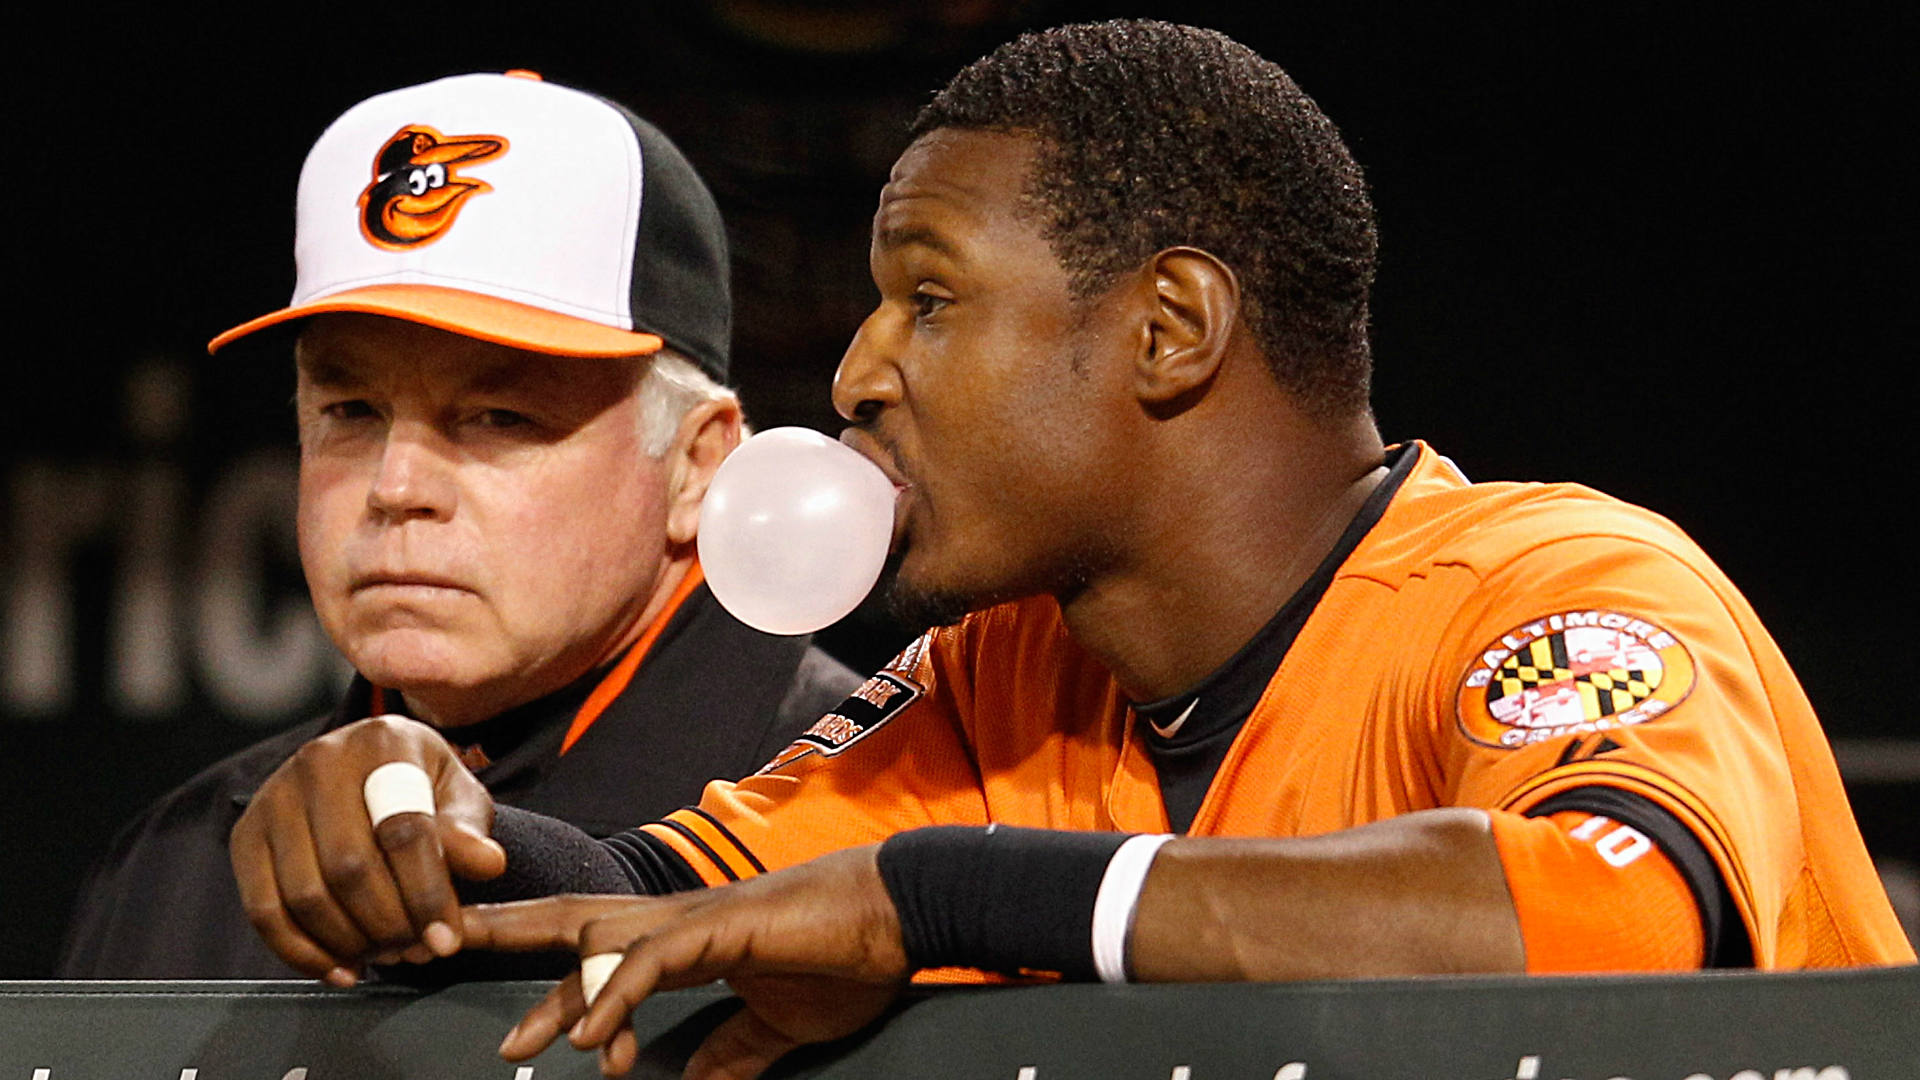 Os Adam Jones Buck Showalter Feel Baltimores Pain As Game Goes On Without Fans